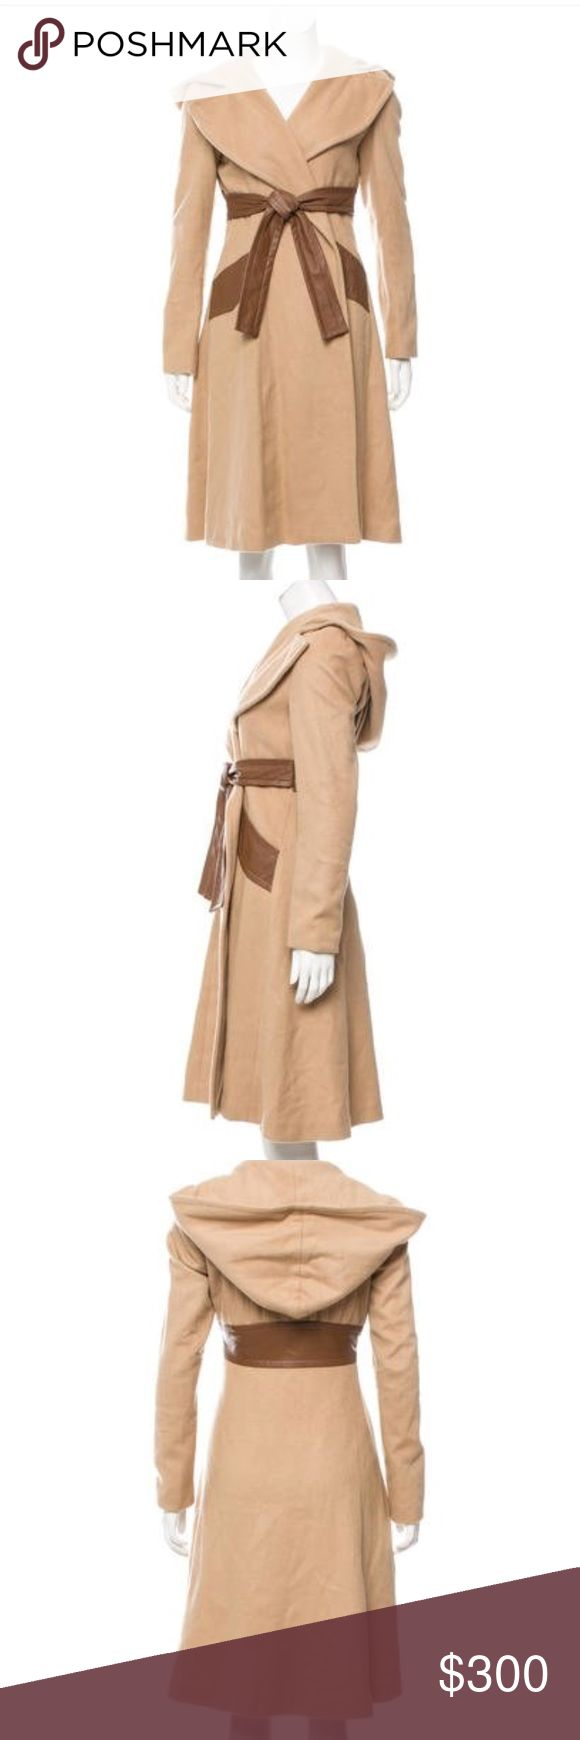 """Mara Hoffman wool leather Coat Camel Hoodie small GREAT CONDITION ONLY WORE ONCE OR TWICE  JUST GOT IT OUT FROM STORAGE SO WILL NEED A LIGHT DRY CLEANING AND READY TO GO NO TEARS or PILLING APPROX MEASUREMENTS   Bust: 36"""" Waist: 32"""" Shoulder: 16"""" Length: 40"""" Mara Hoffman Jackets & Coats"""